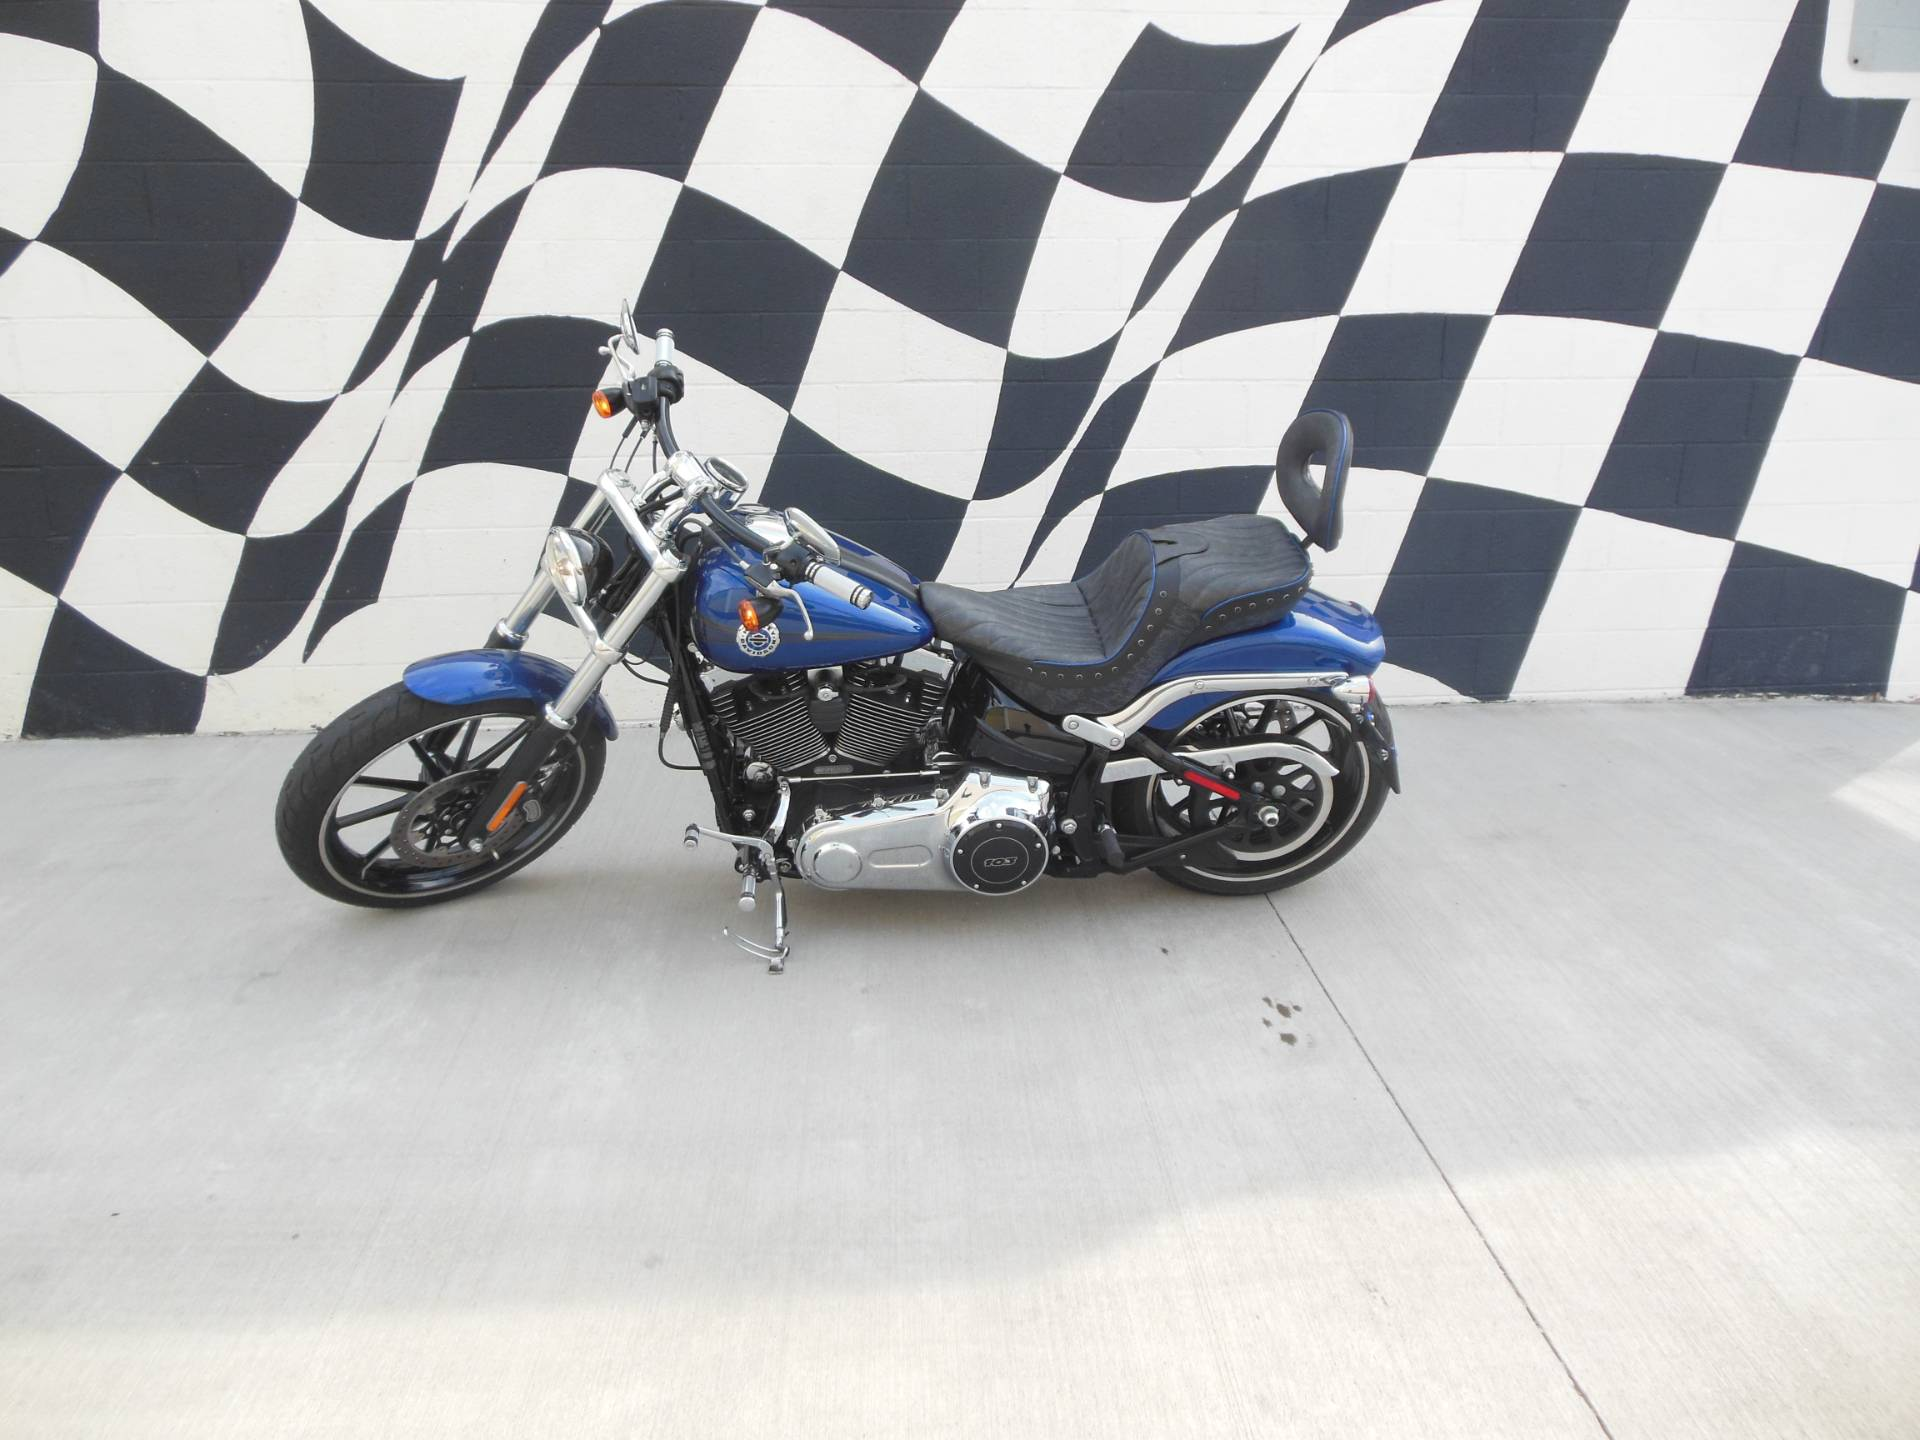 2015 Harley-Davidson Breakout for sale 33876